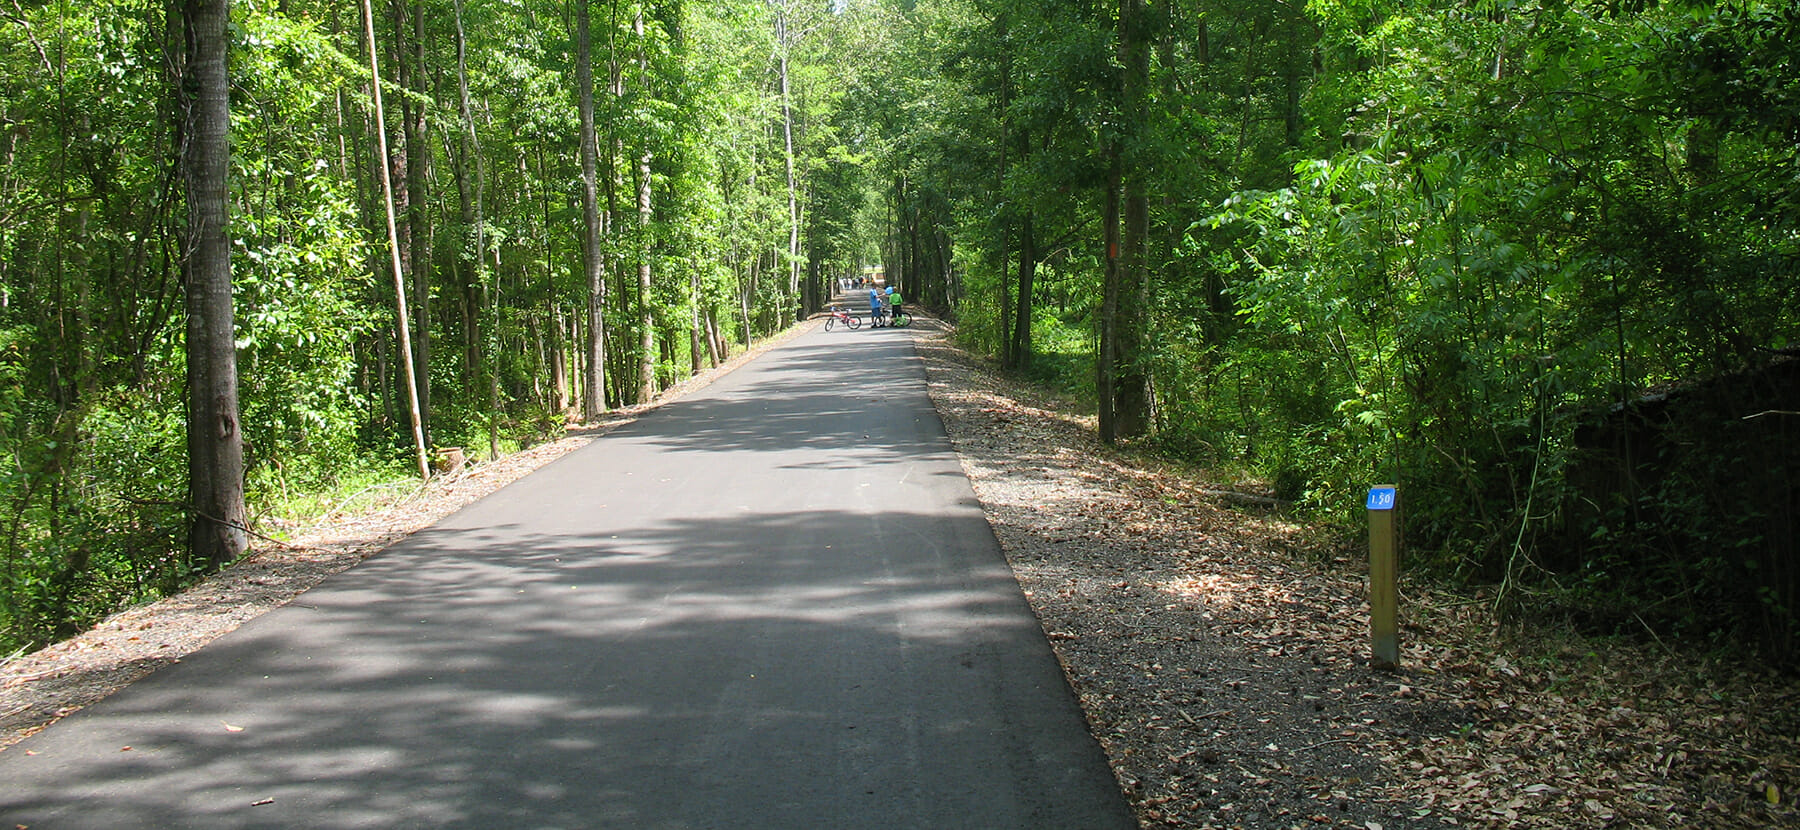 The new Blountstown Greenway